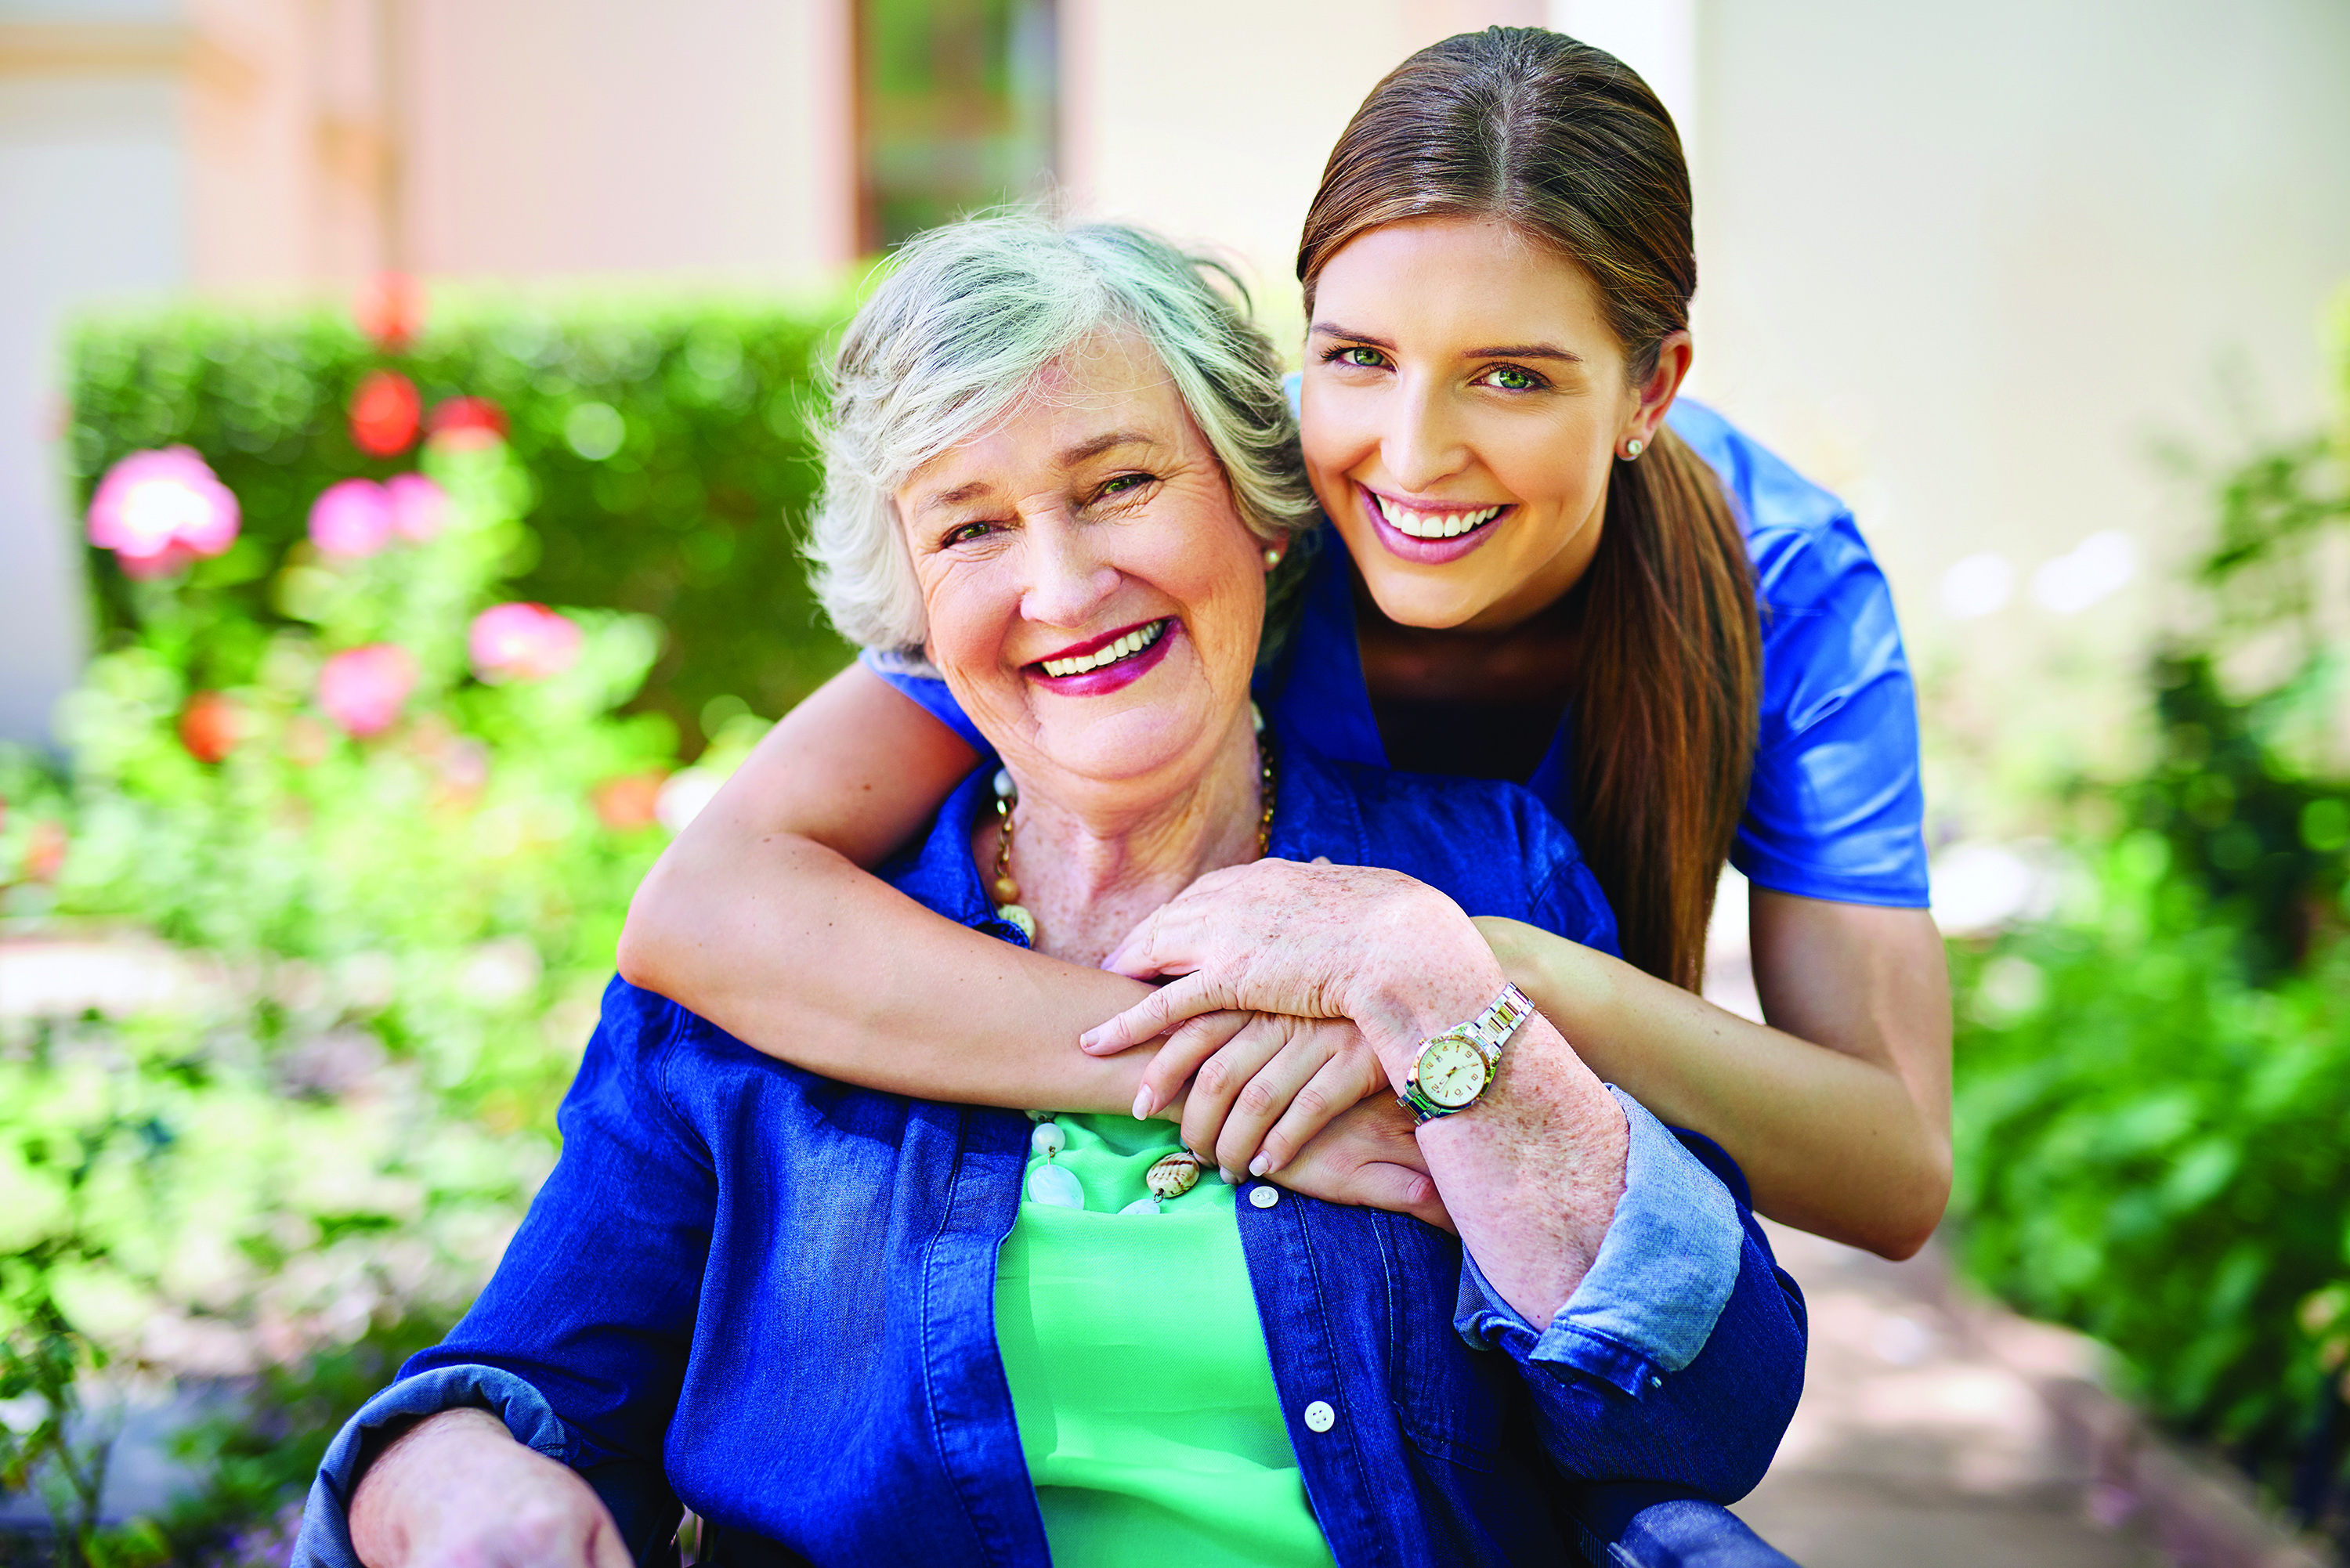 Home-Based Care Services in Lititz, PA